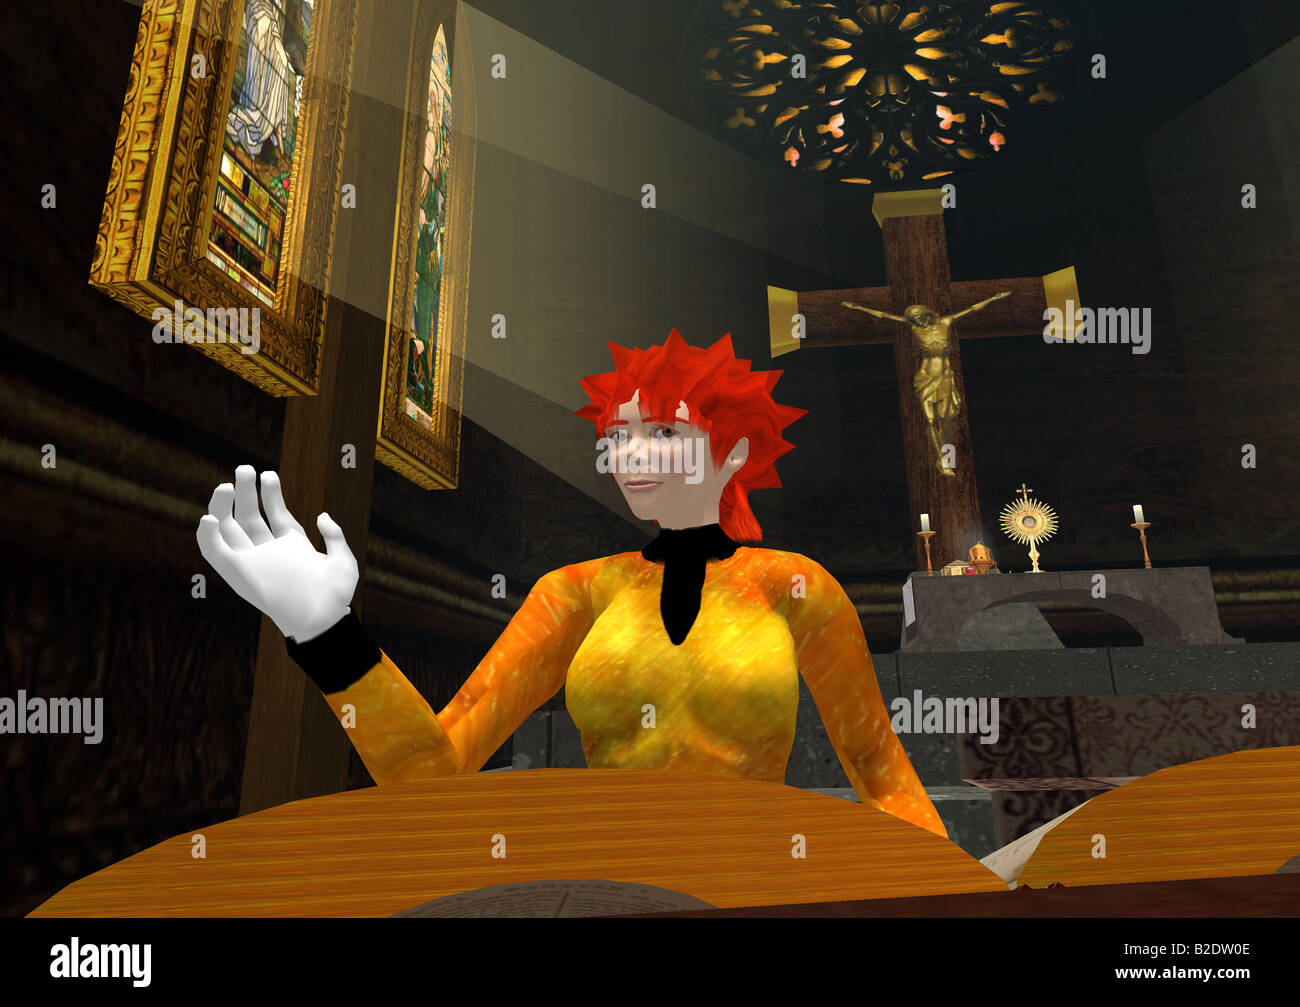 Second Life: A computer grab of a church from the virtual world Second Life - Stock Image